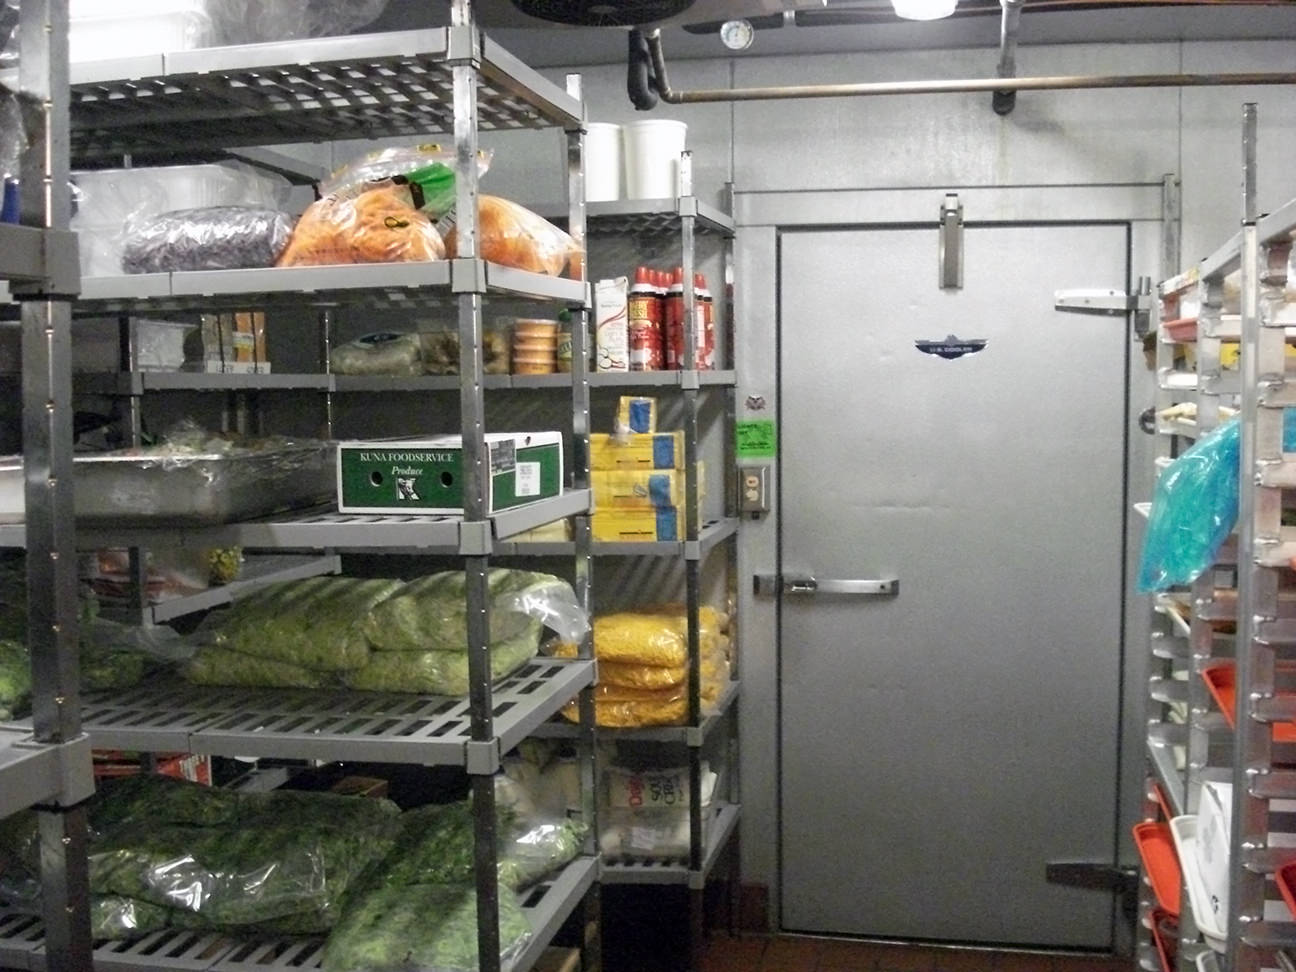 Commercial Walk in Cooler shown here.